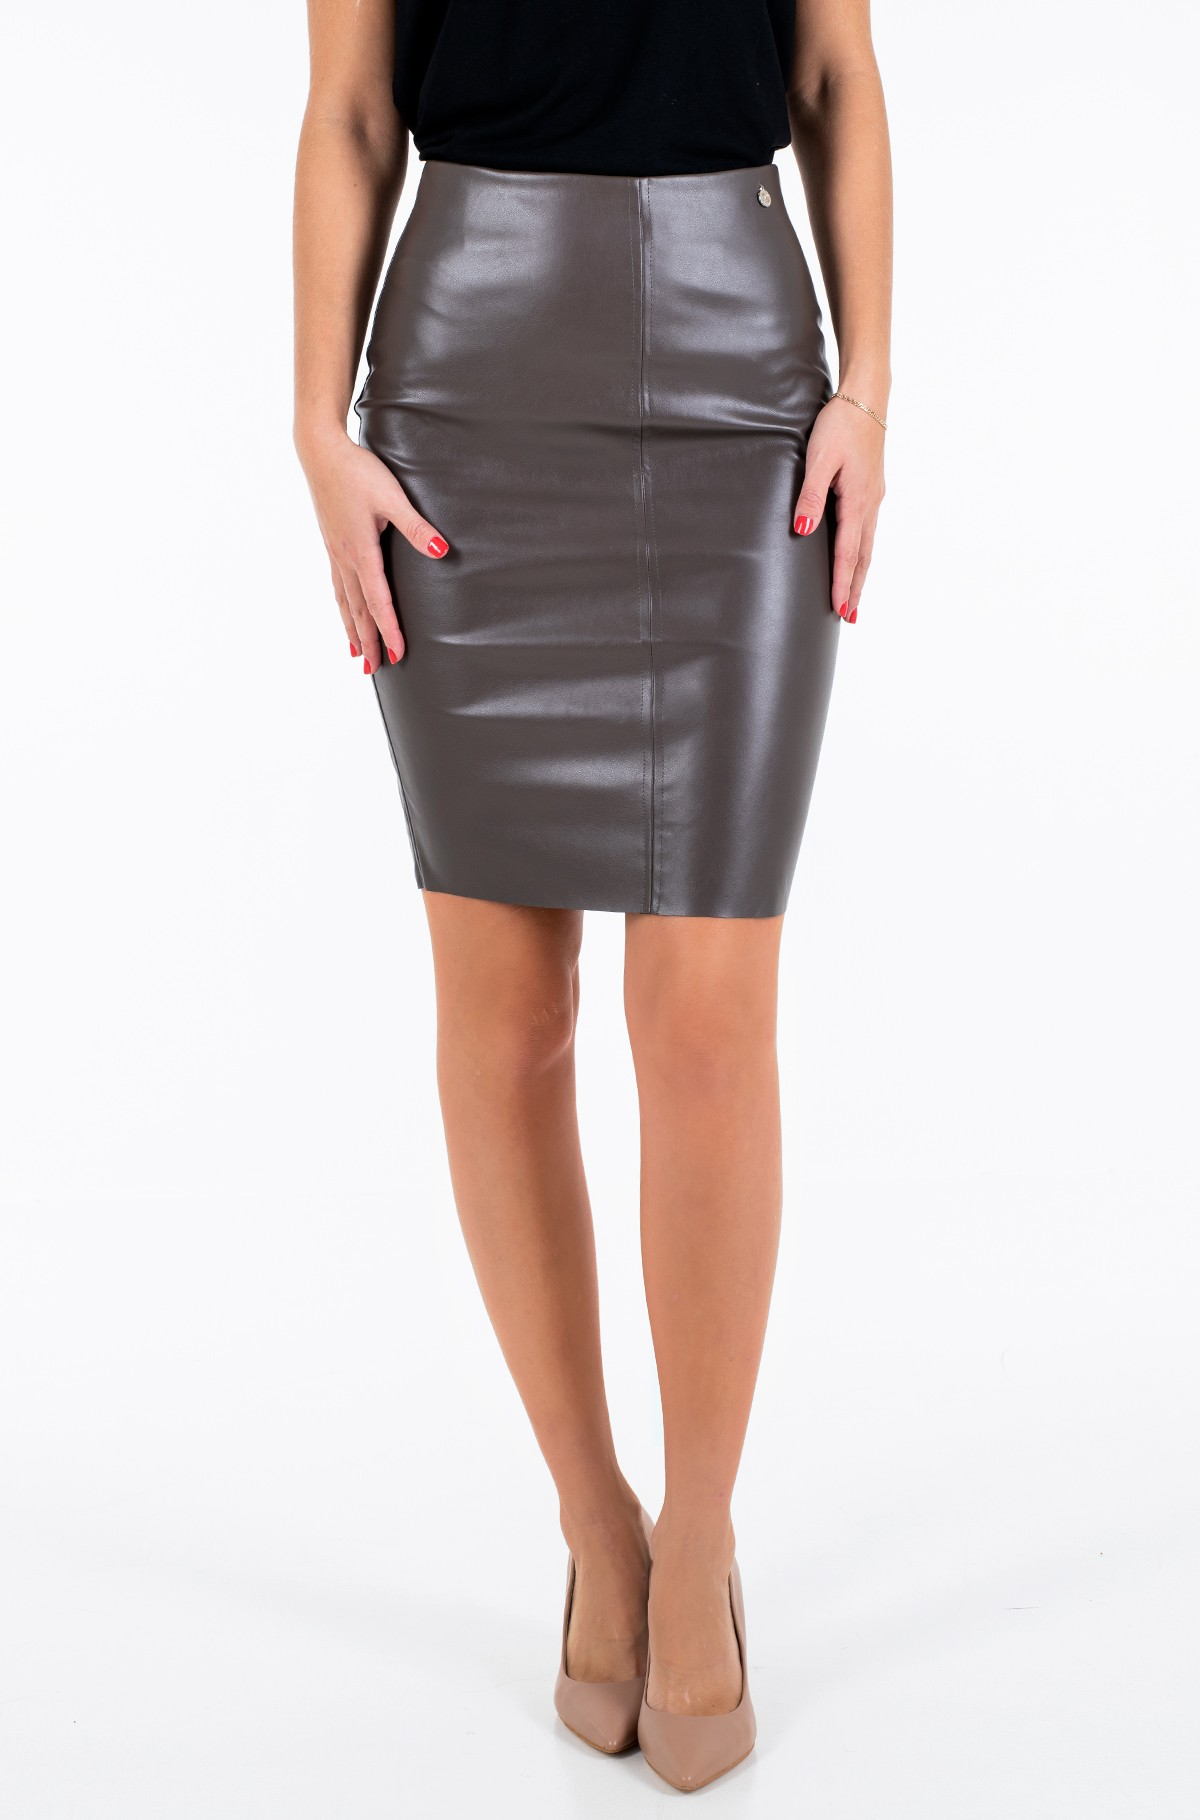 Leather skirt Agve02-full-1